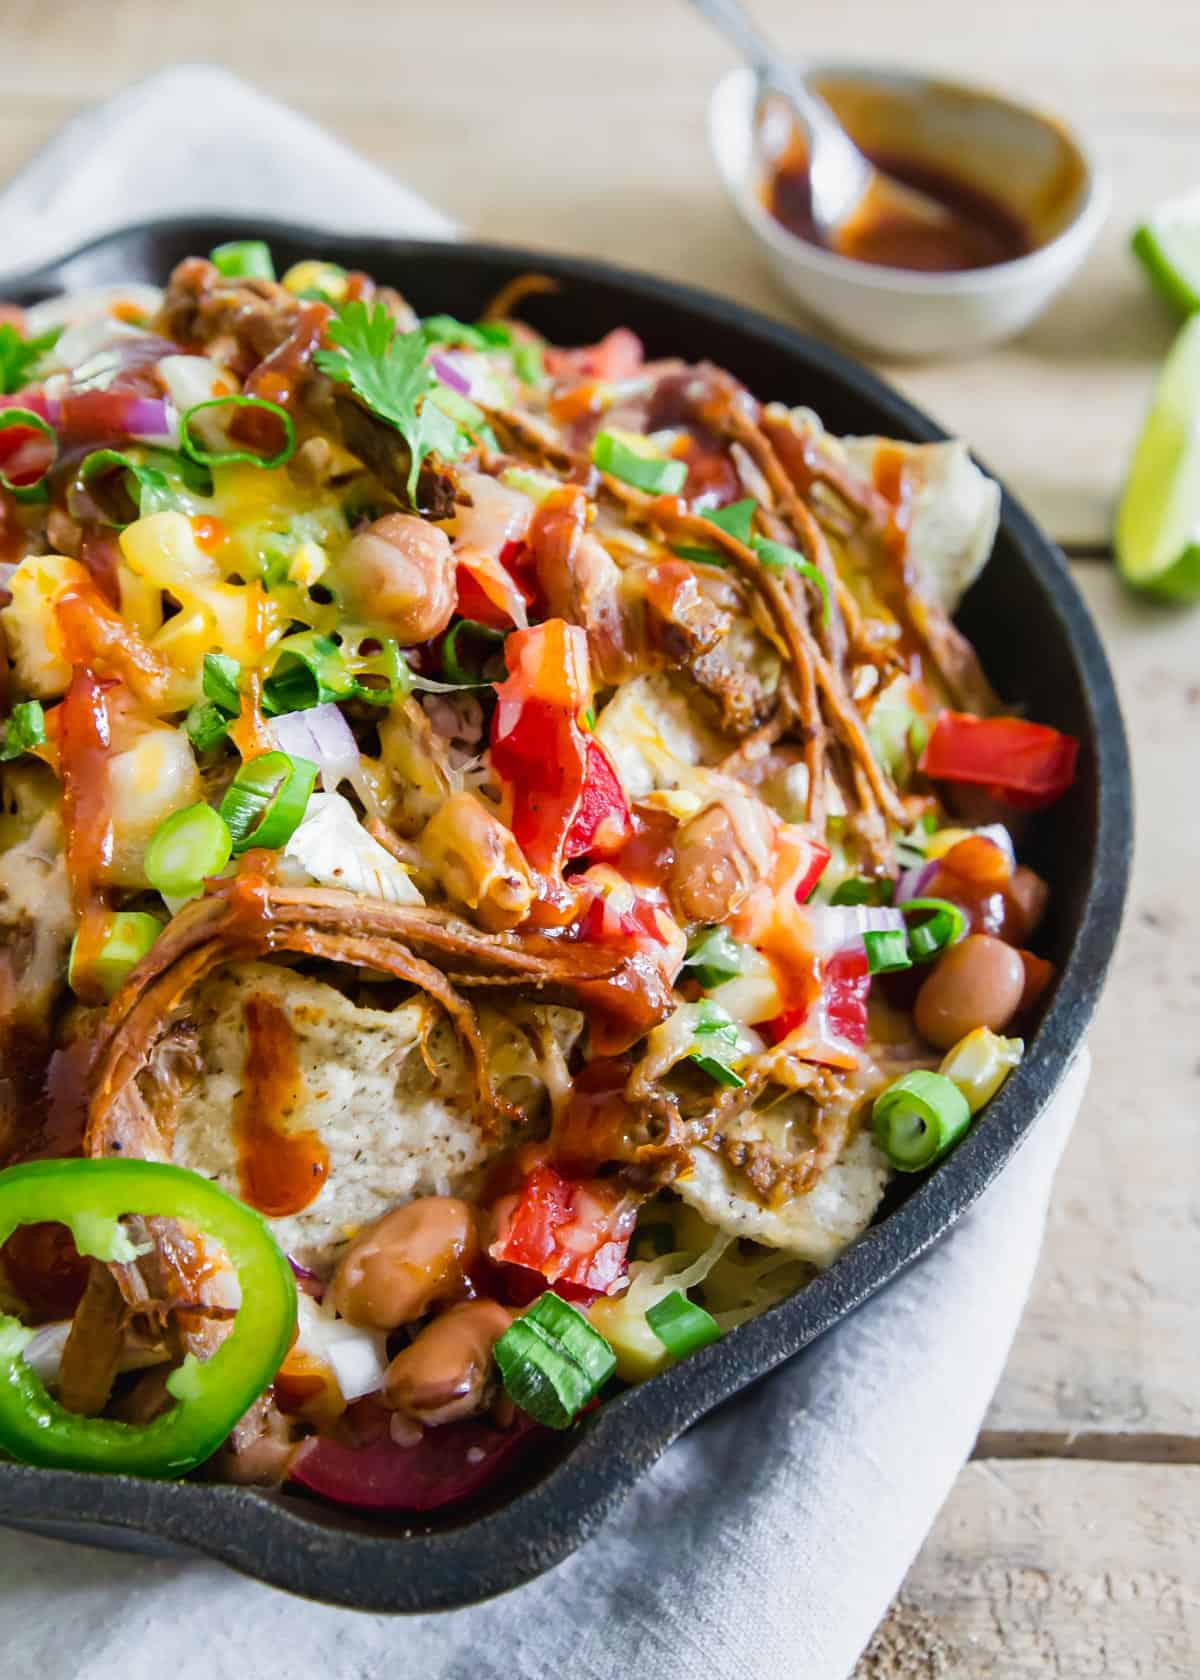 Use leftover shredded beef brisket to make these easy but insanely delicious BBQ brisket nachos. They're great as a party appetizer, dinner or addition to a game day spread and easy to customize to your topping preferences!